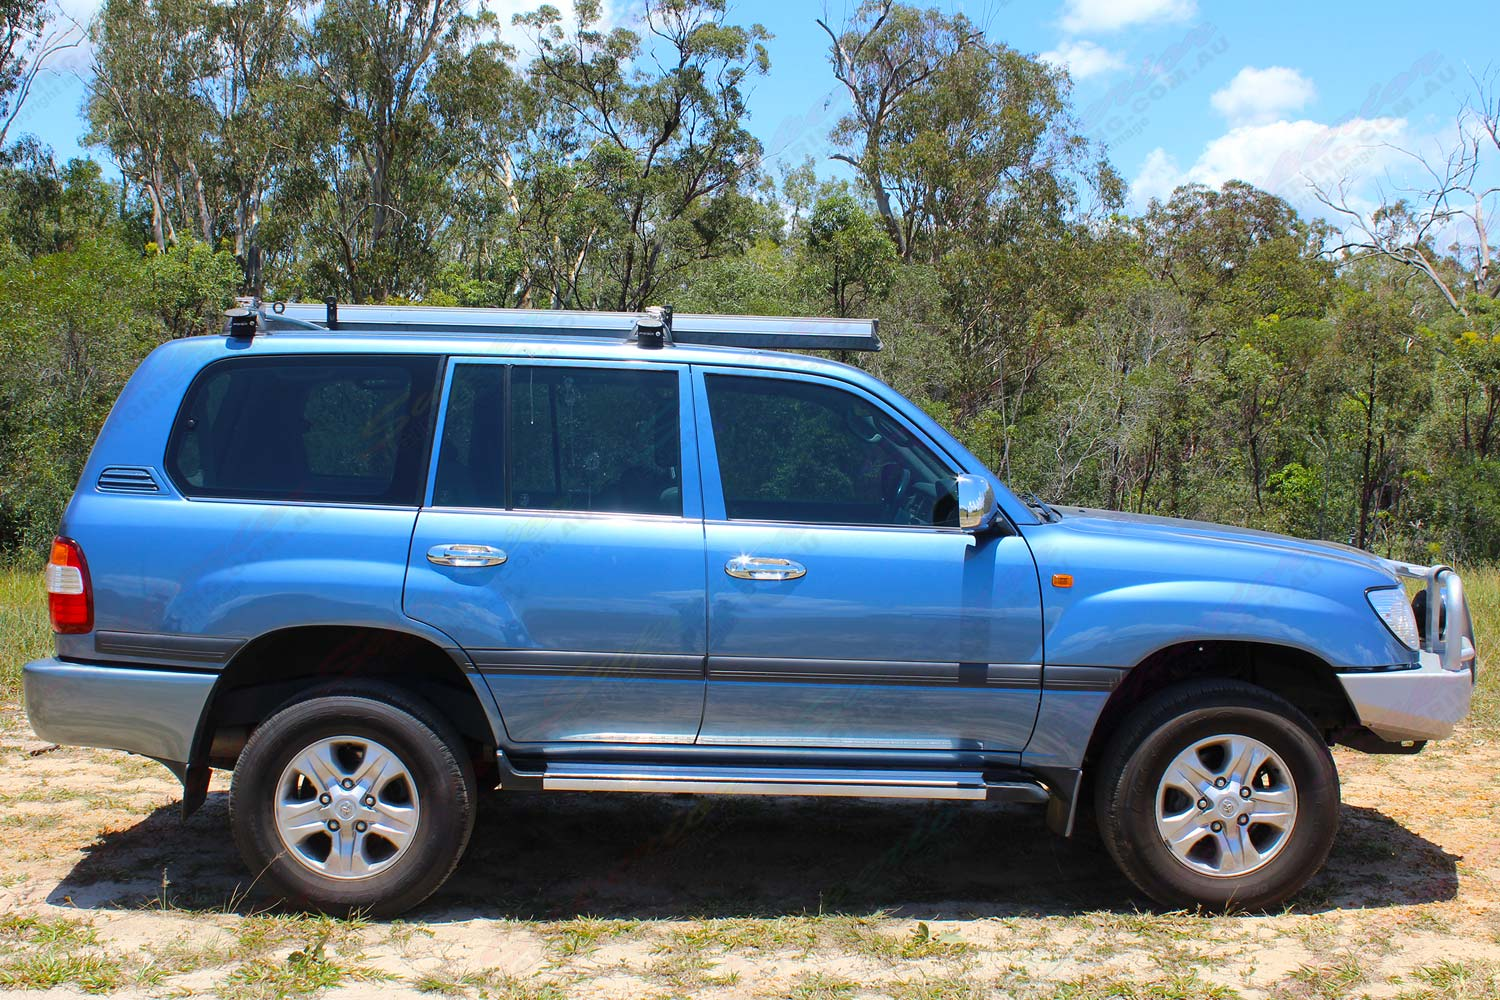 Right side view of a blue 100 Series Toyota Landcruiser after being fitted with a premium 2 inch Bilstein lift kit